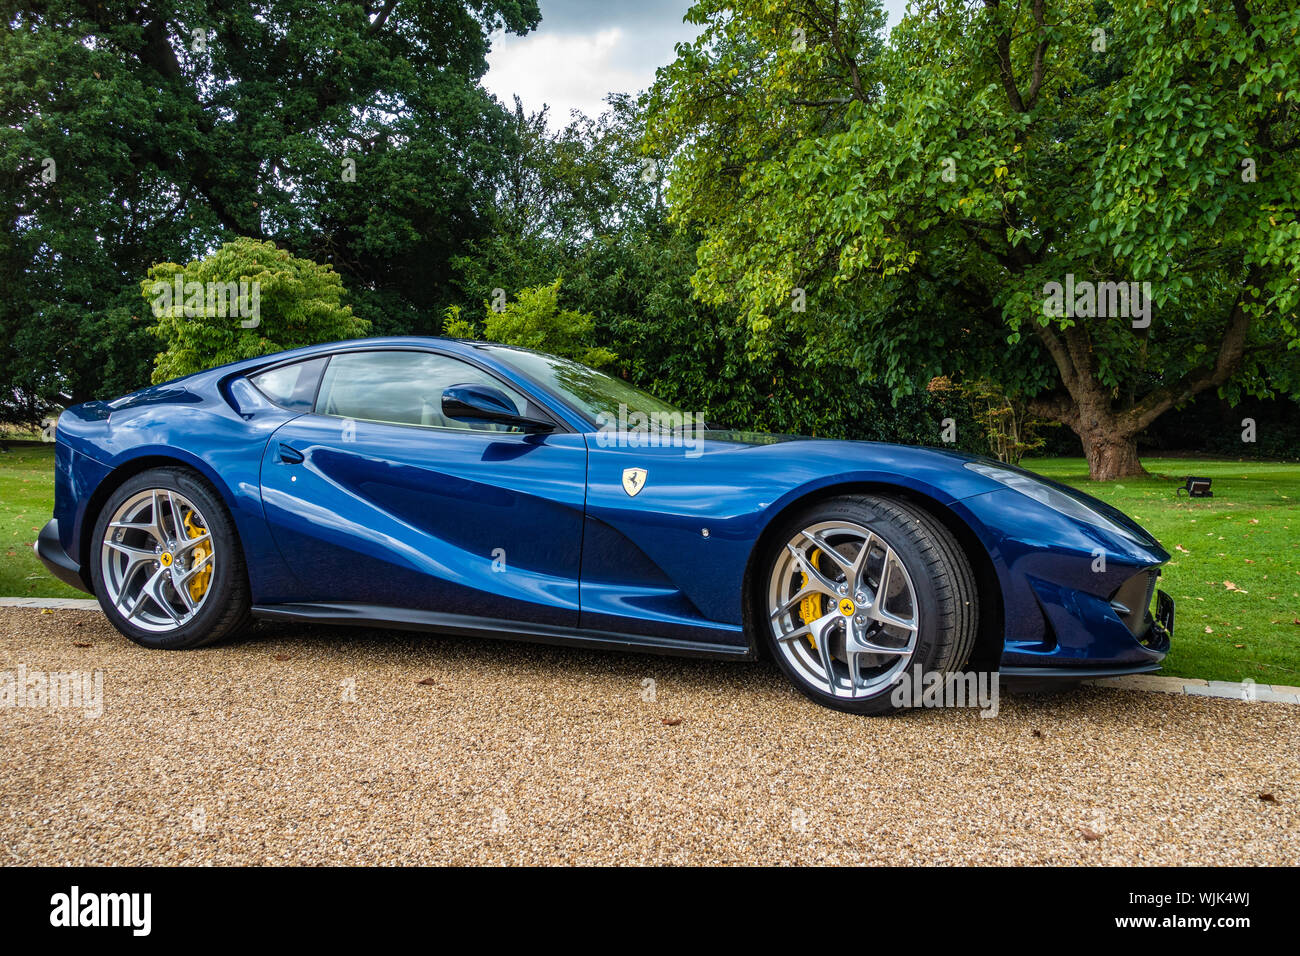 Side view of a 2019 blue Ferrari 812 superfast s,a on a